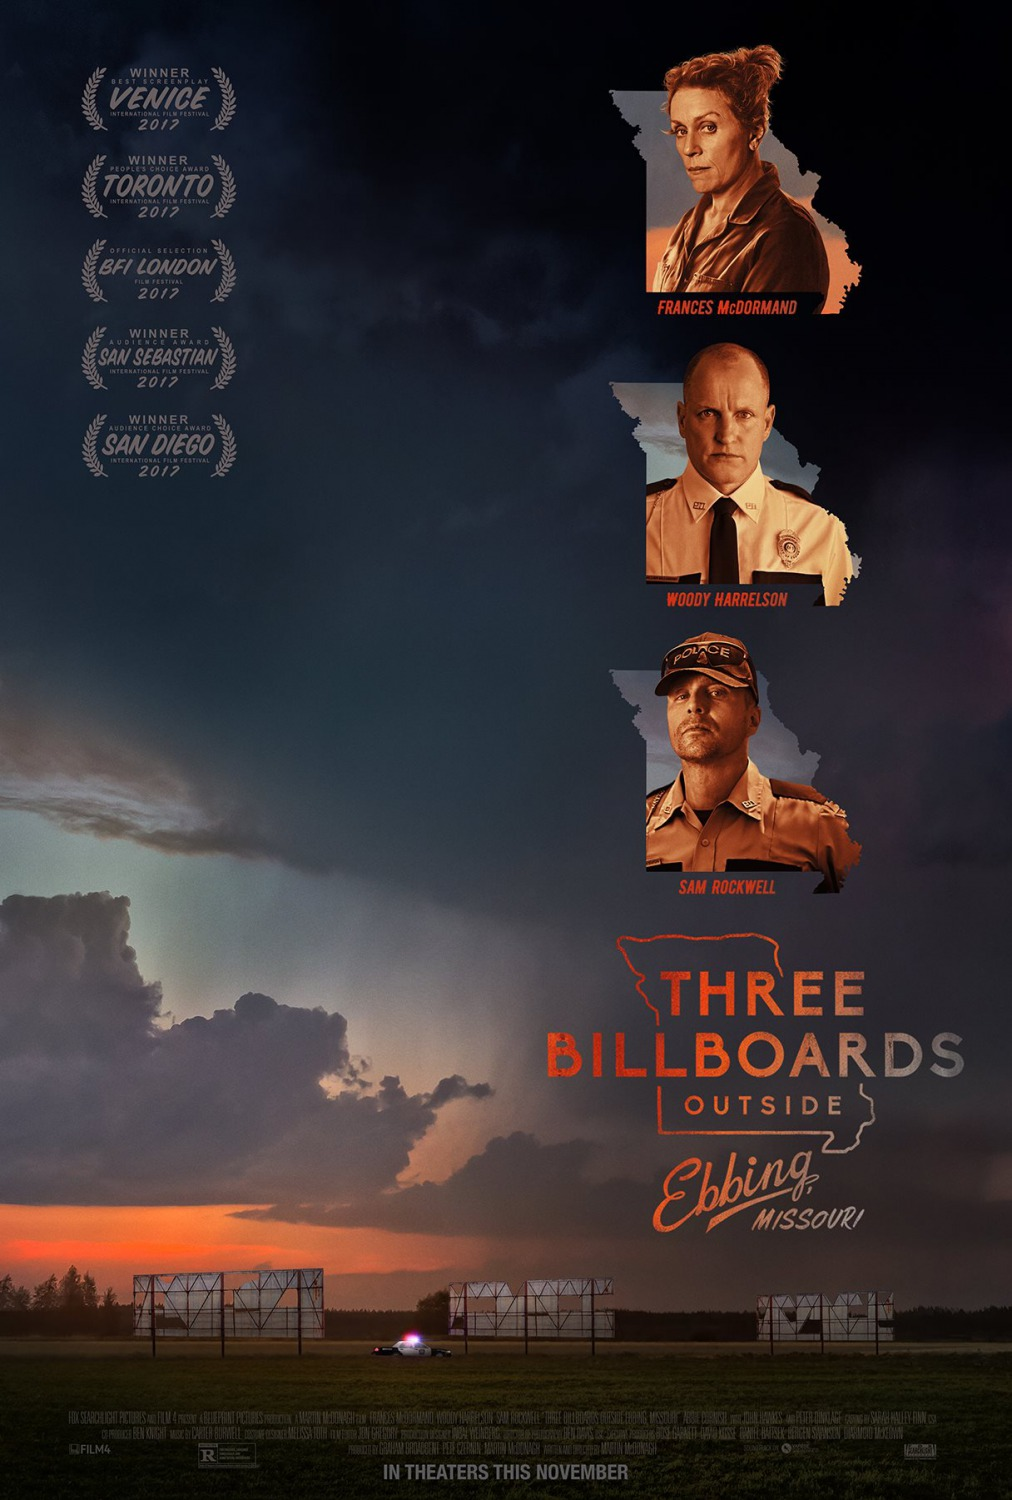 Three-Billboards-Outside-Ebbing-Missouri-poster-2.jpg